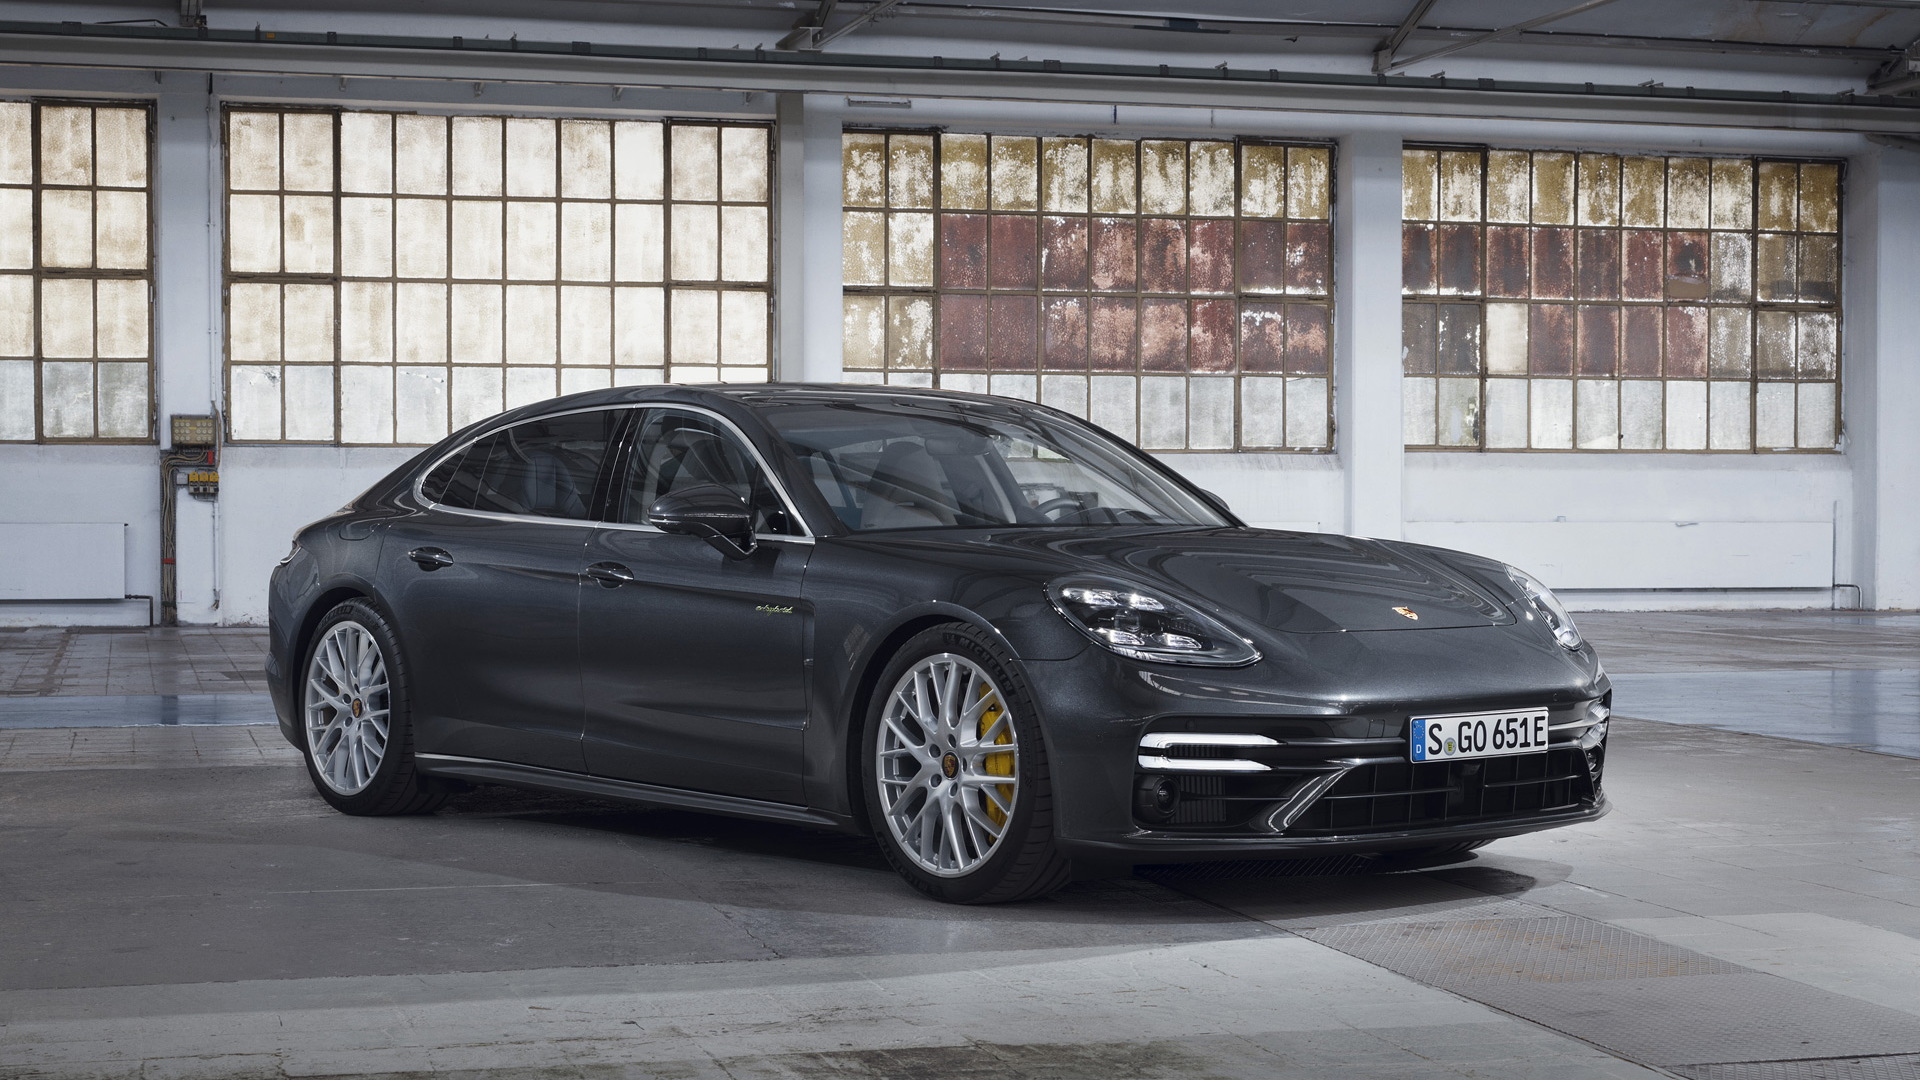 2021 Porsche Panamera Turbo S E-Hybrid Executive